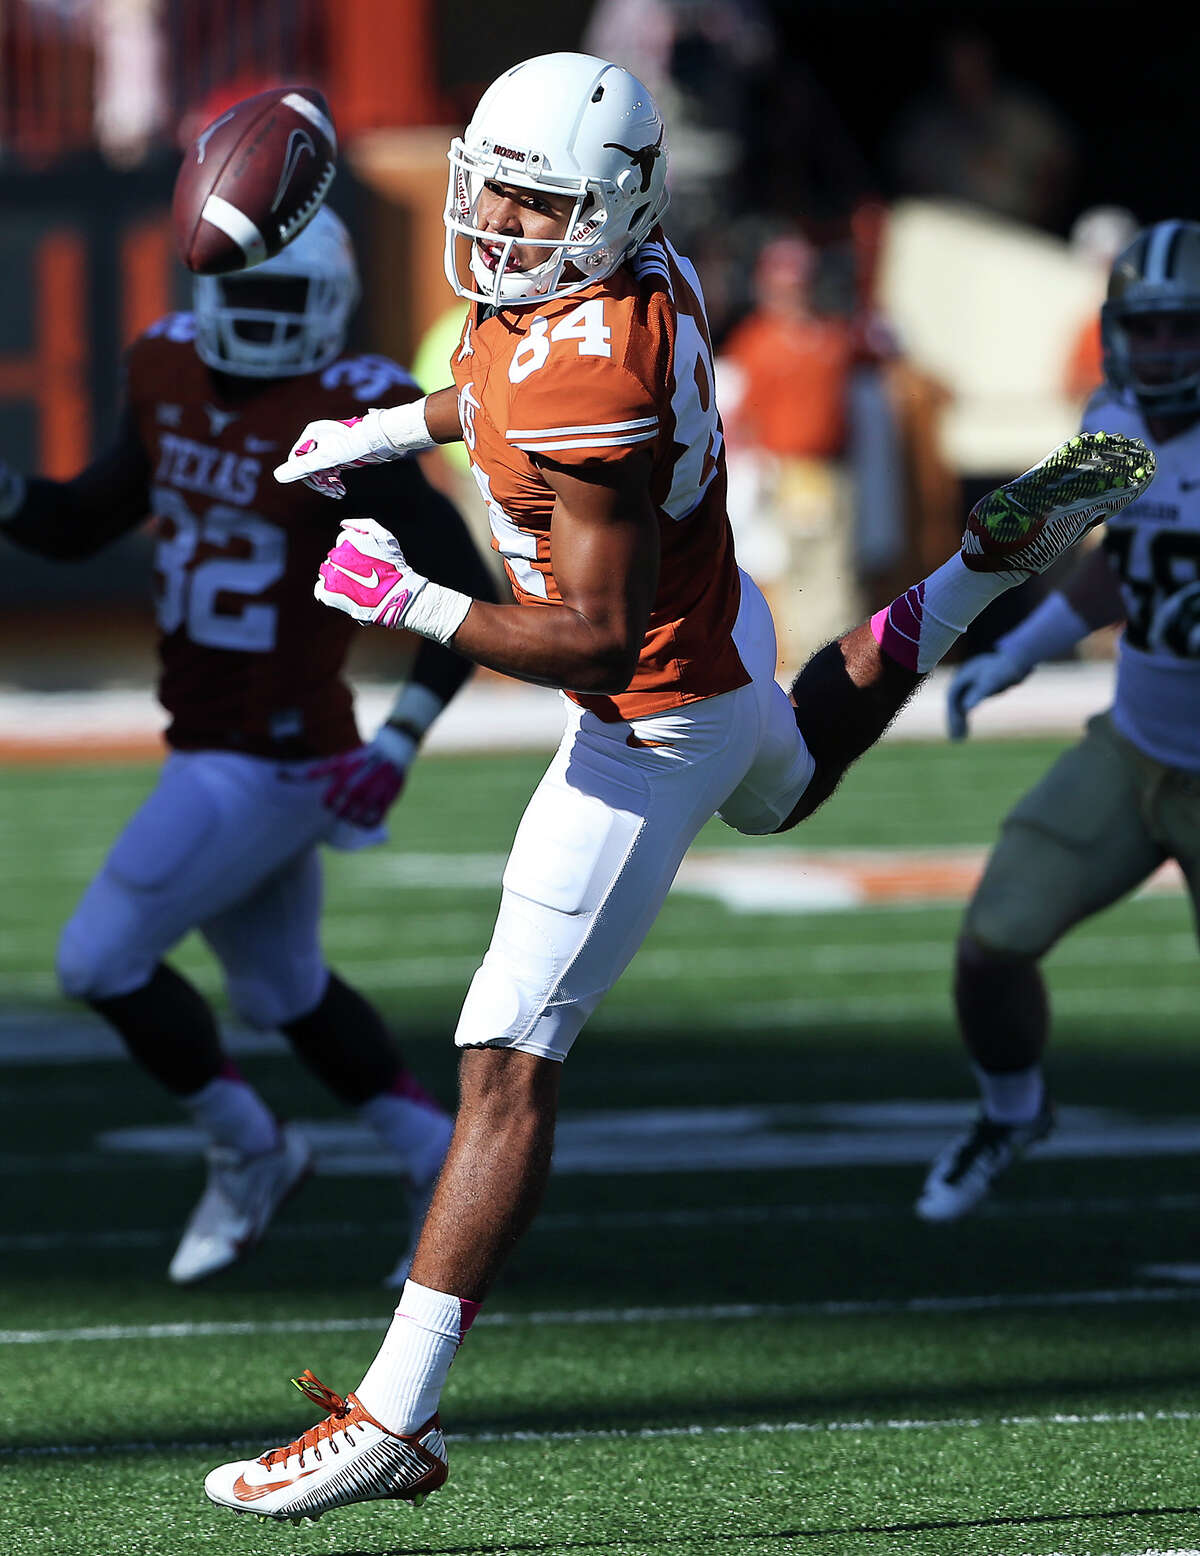 Longhorn receiver Lorenzo Joe watches the ball squirt away on a pass he could catch as UT hosts Baylor at Royal Memorial Stadium on October 4, 2014.